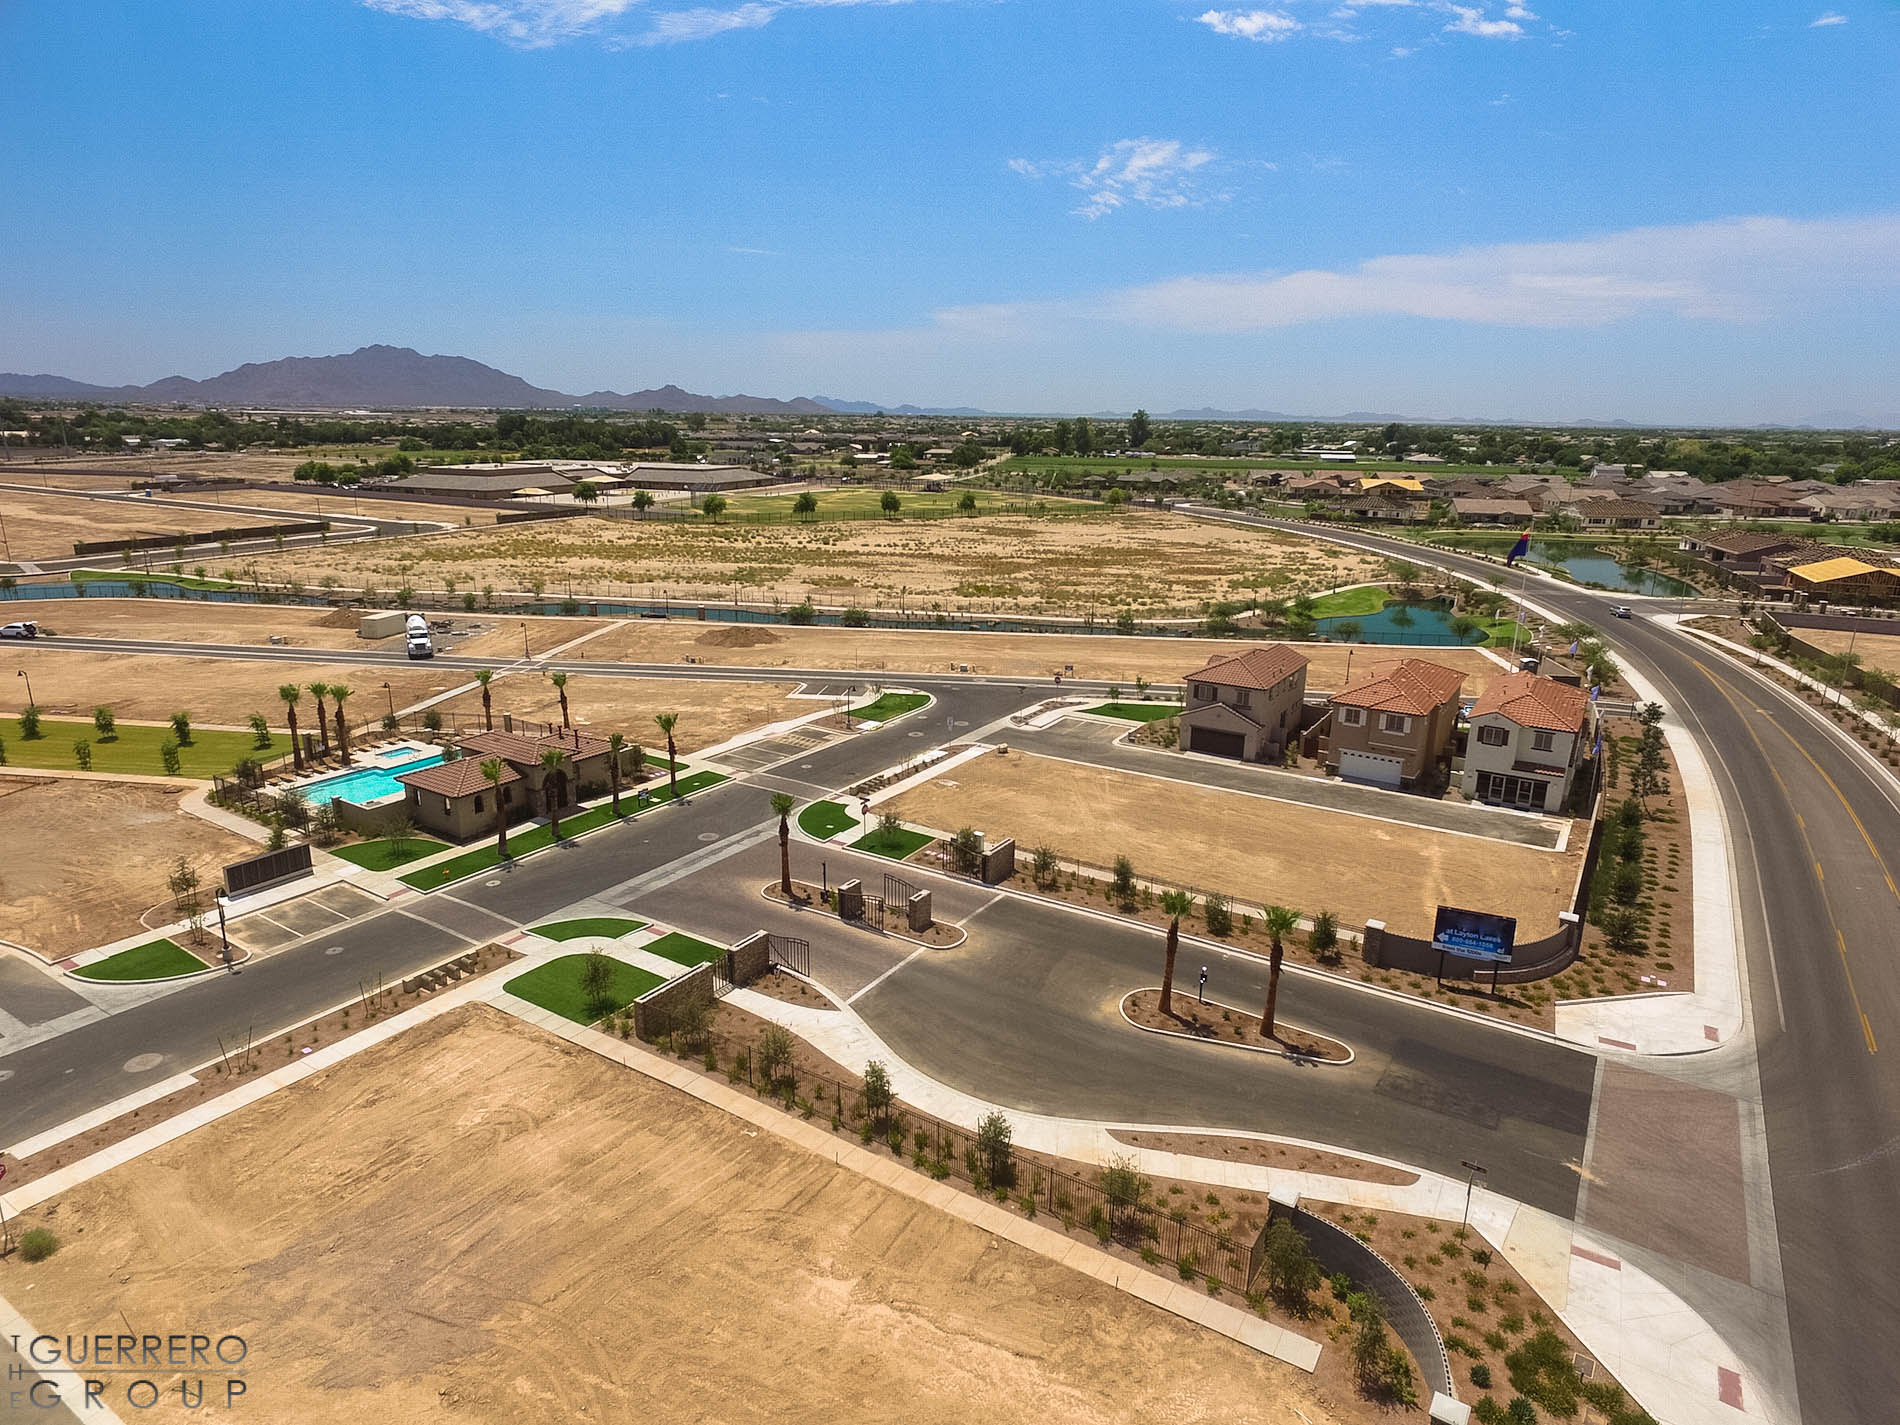 More On Freeways To Parks >> INSPIRATION at LAYTON LAKES New Gated Community in South Chandler, Arizona - Pricing starting at ...